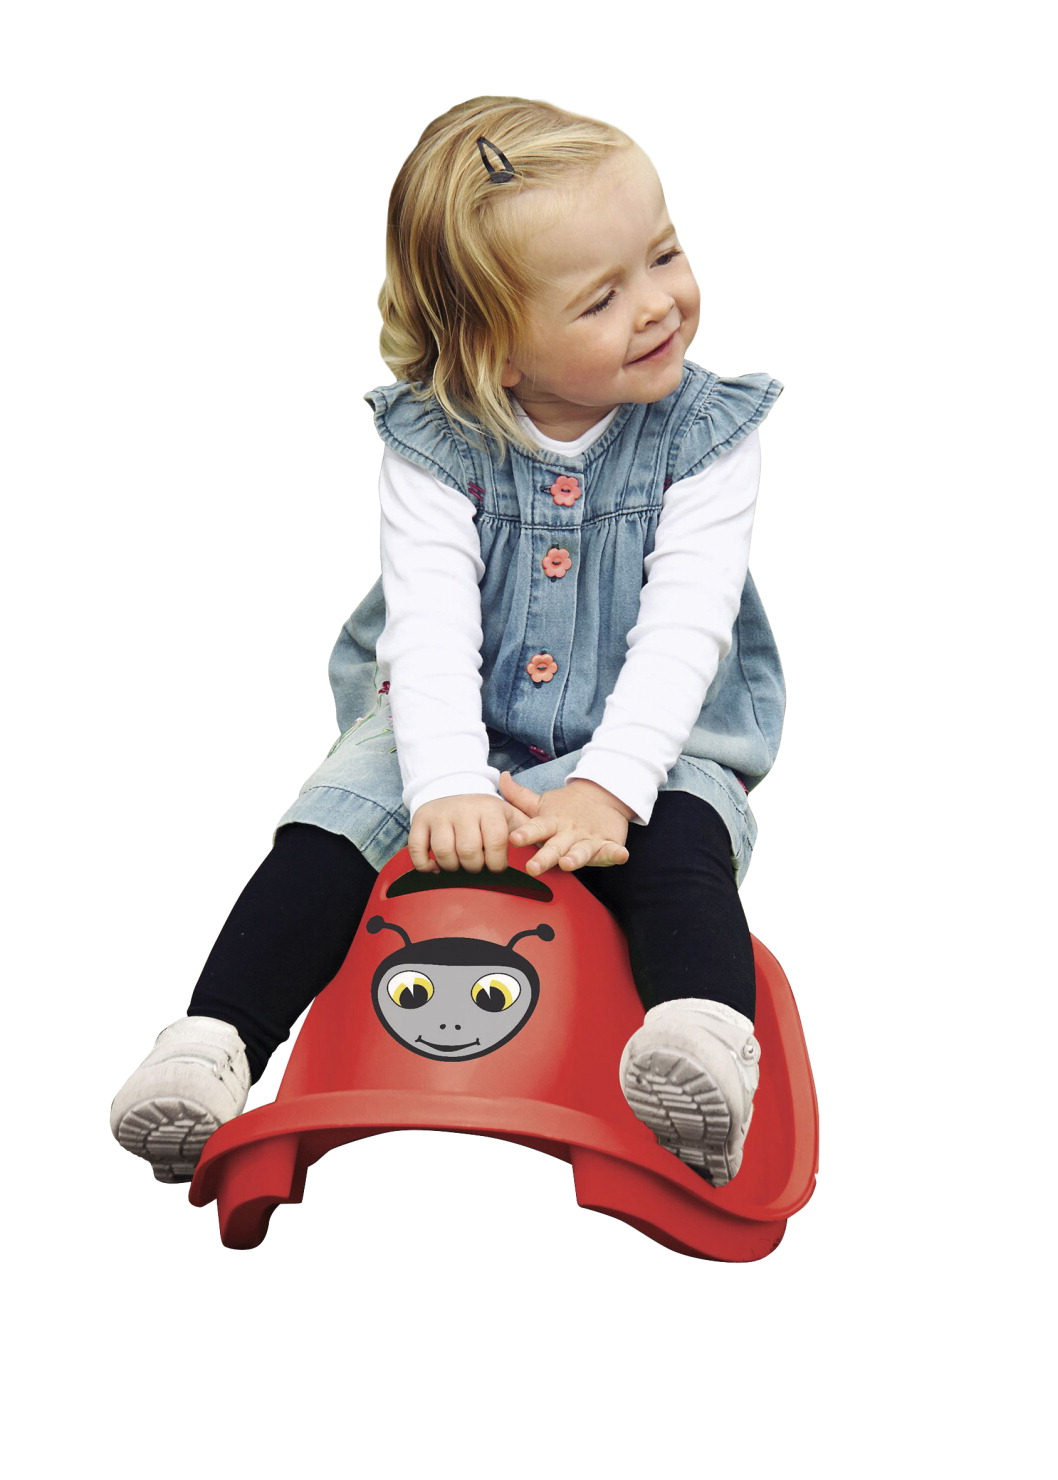 Dantoy Plastic Lady Bug Rocker, 2 Pounds, Ages 12 Months and Up, Red